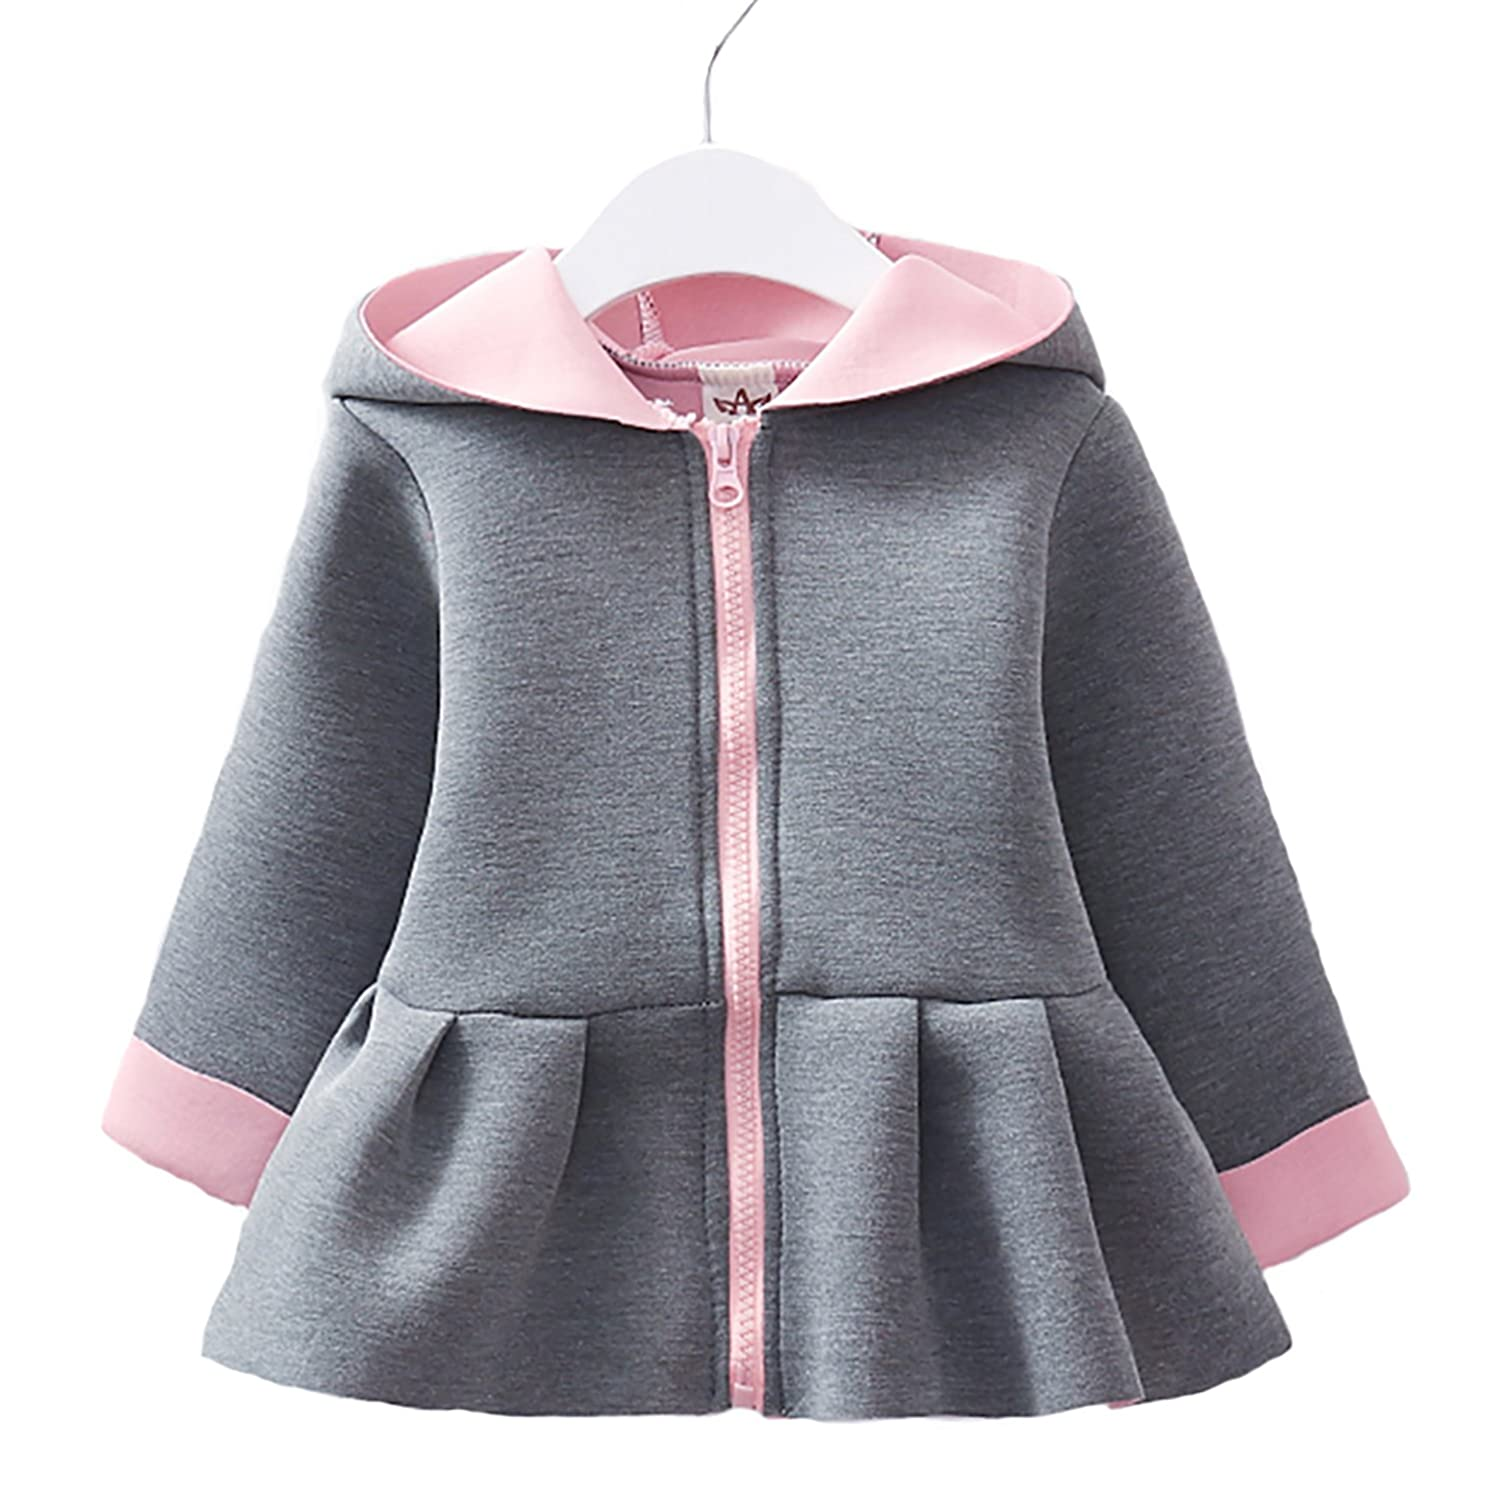 Cahayi Baby Girl Dress Coat Ear Hooded Toddler Kid Dress Outwear Jacket Hoodie CAGC03